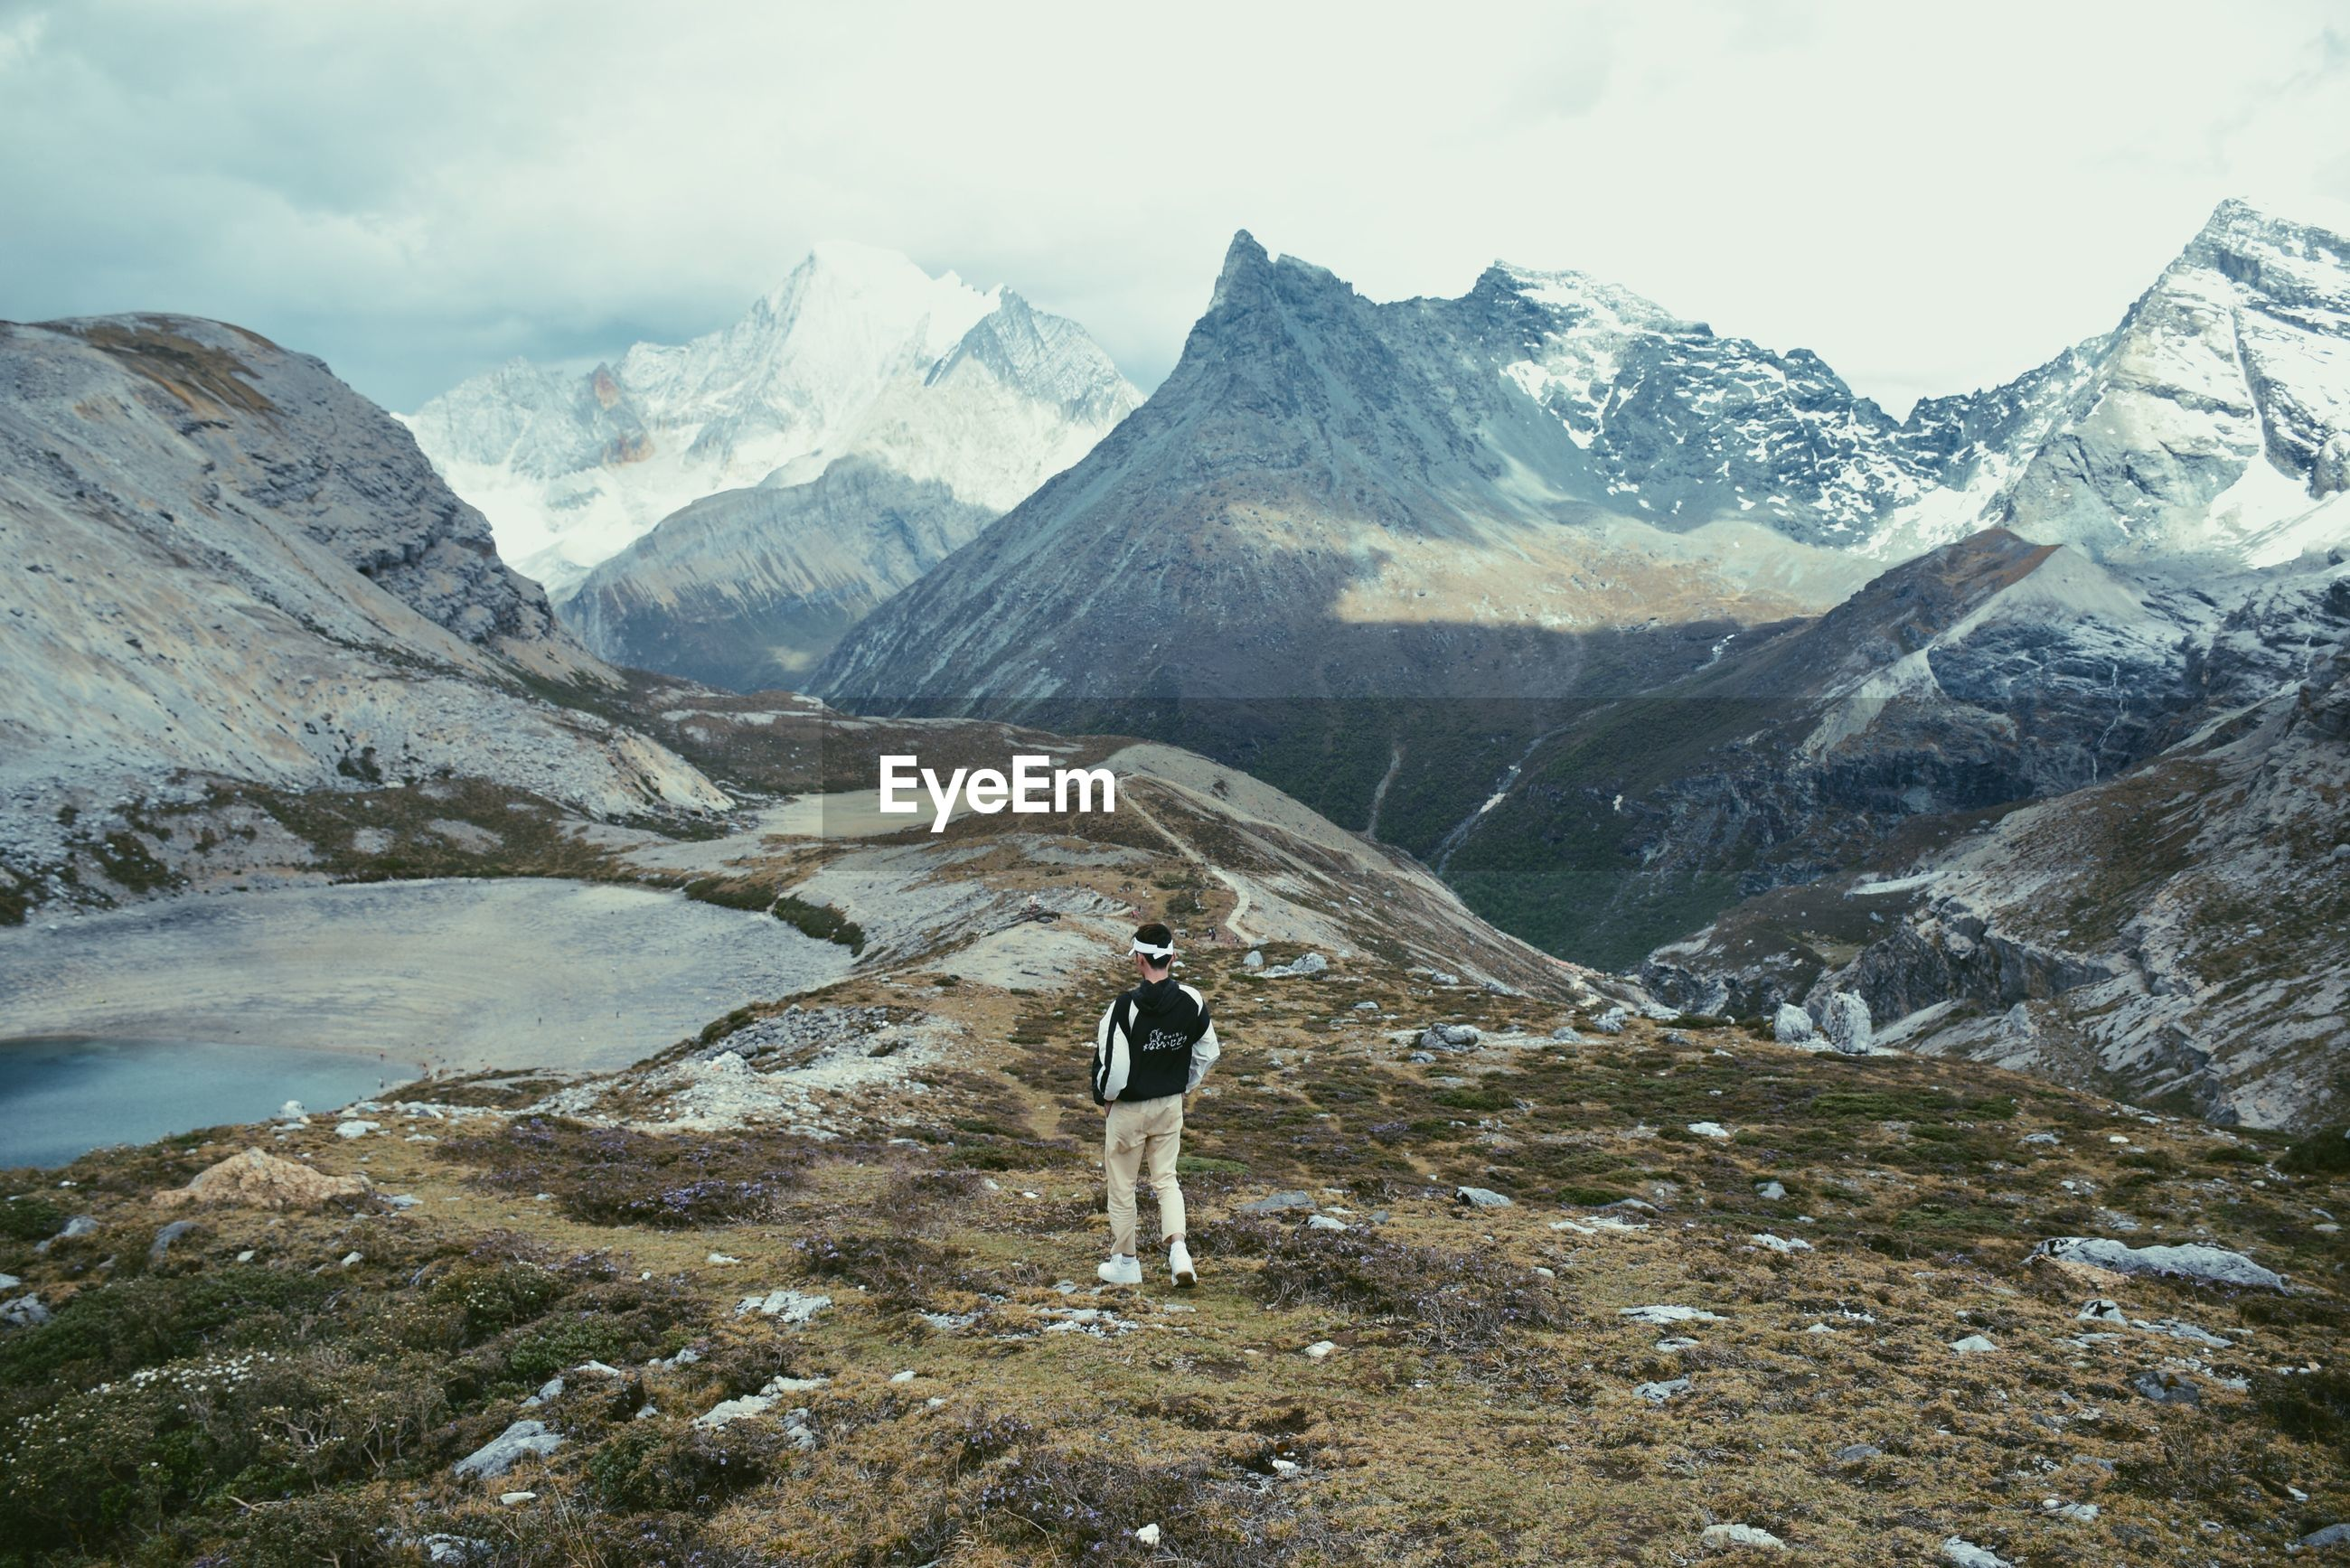 FULL LENGTH REAR VIEW OF MAN STANDING ON MOUNTAIN